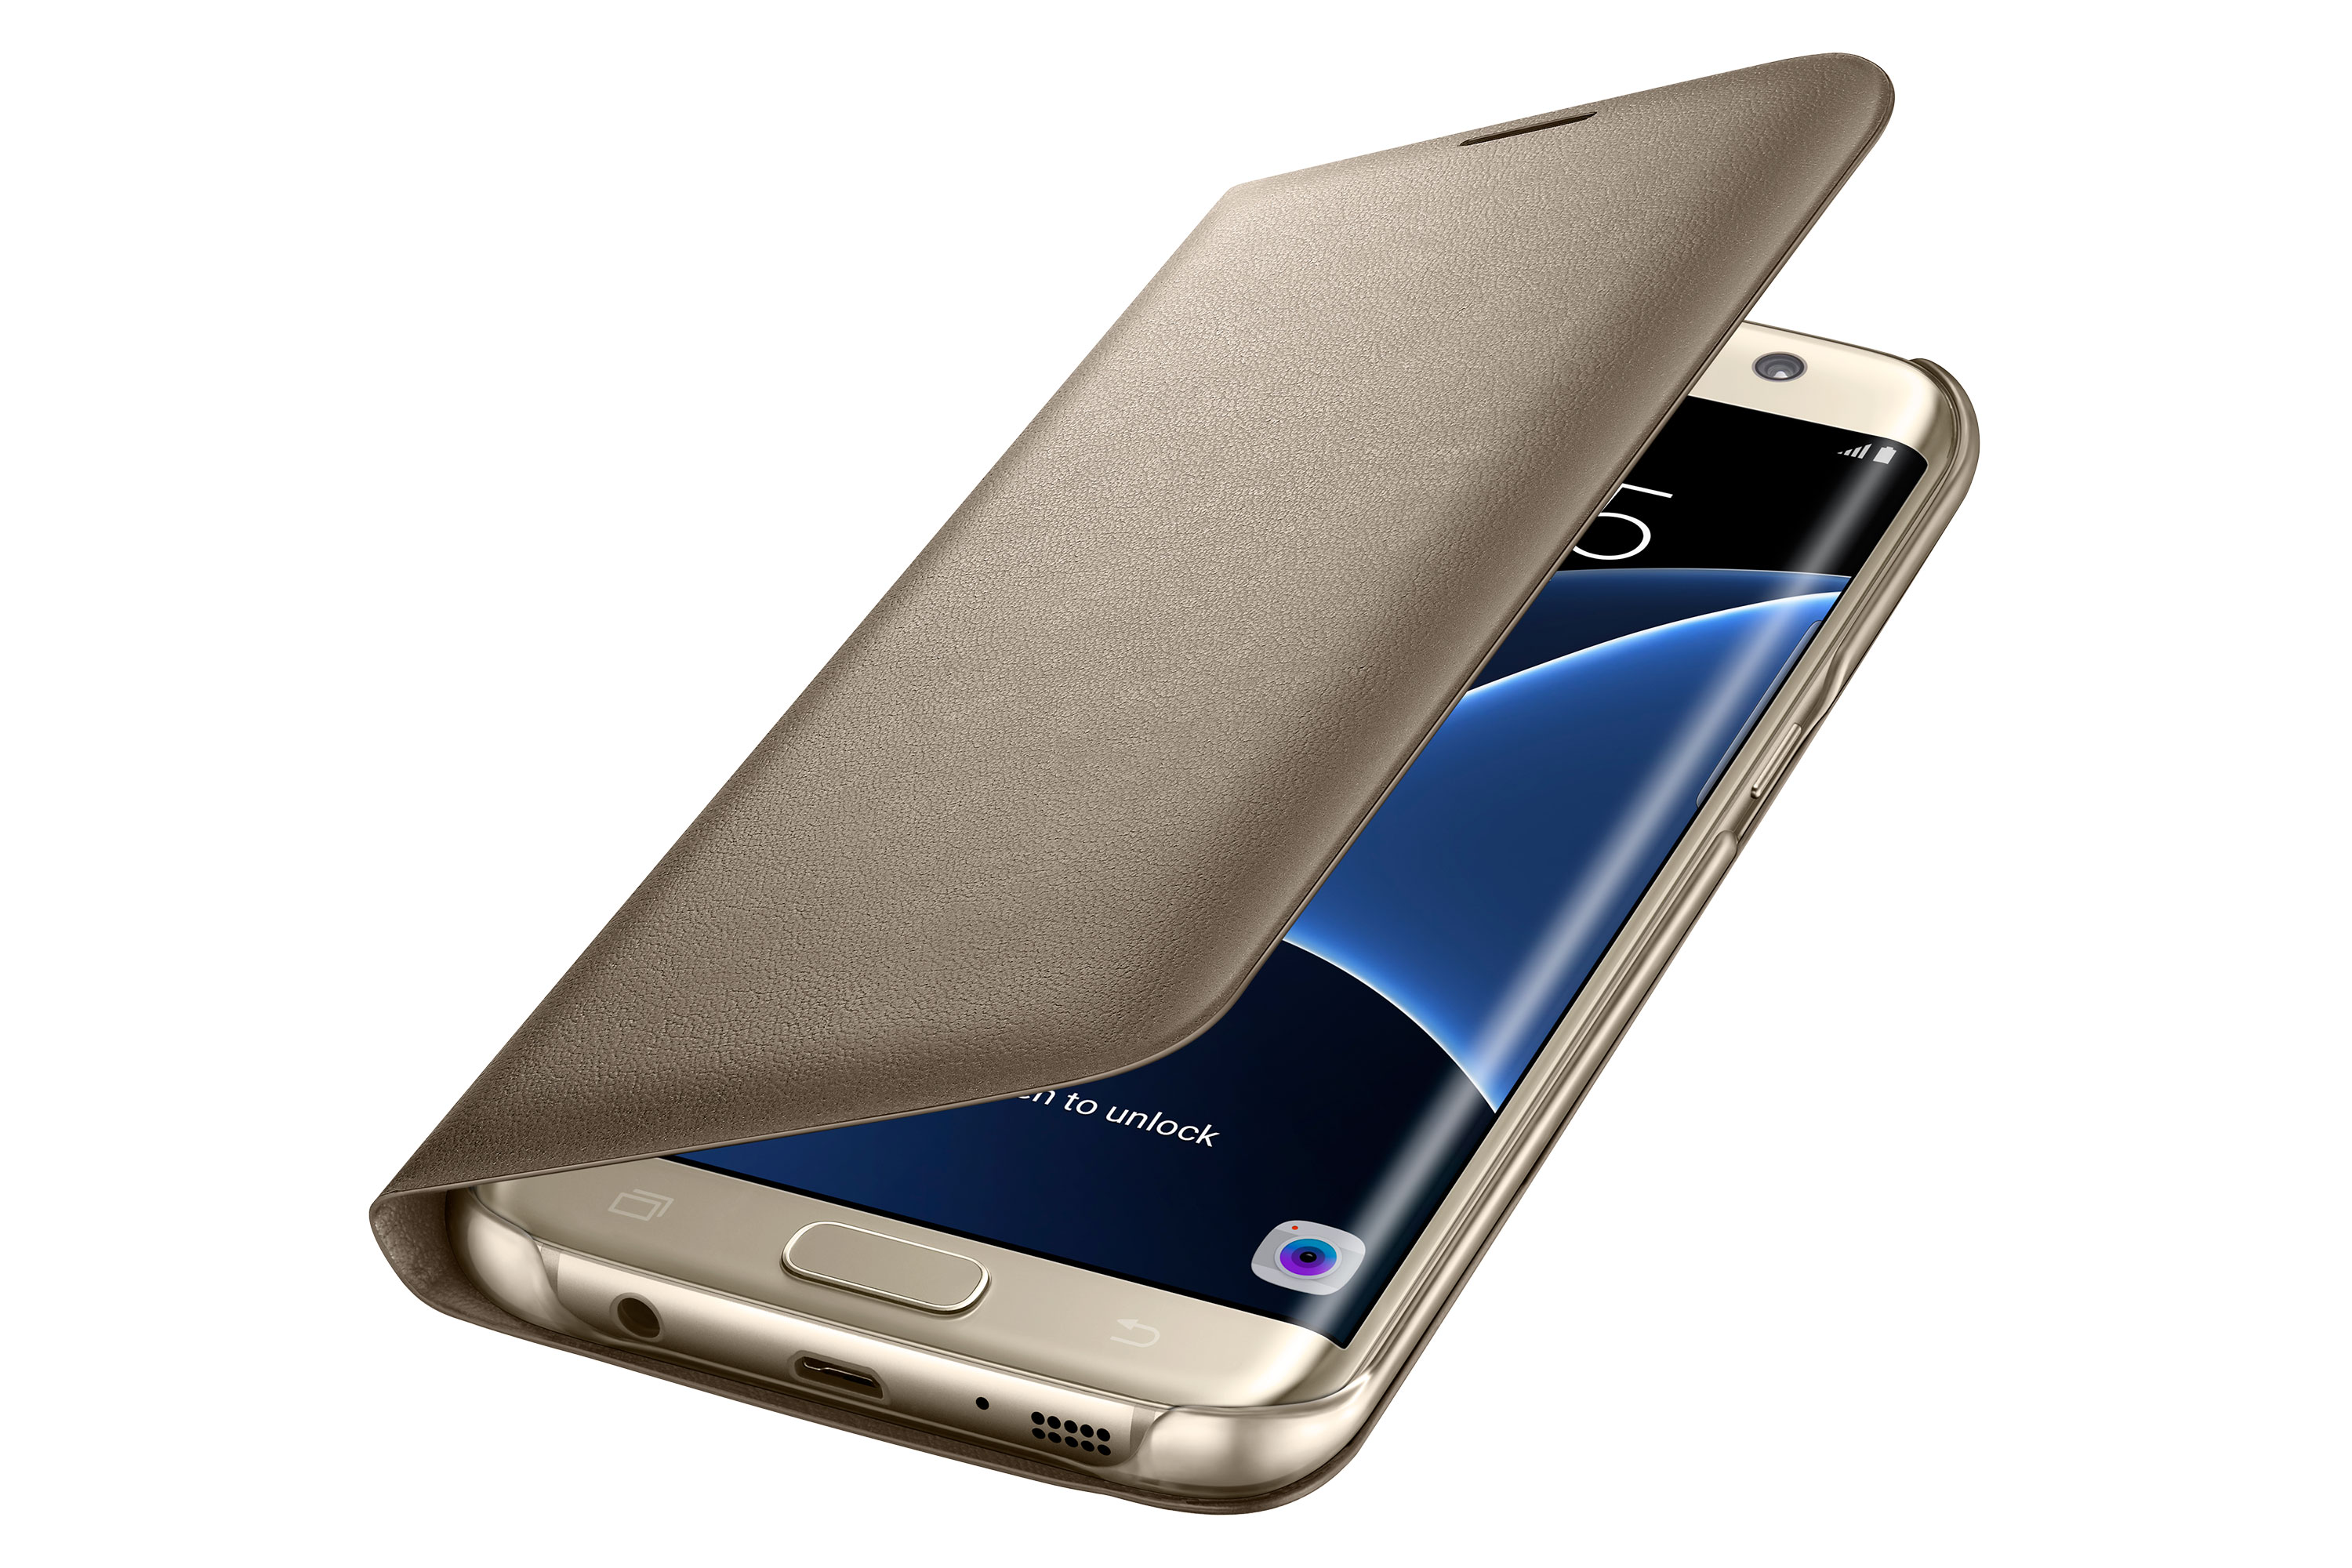 Samsung Durable Galaxy S7 Edge LED Flip View Cover, Gold